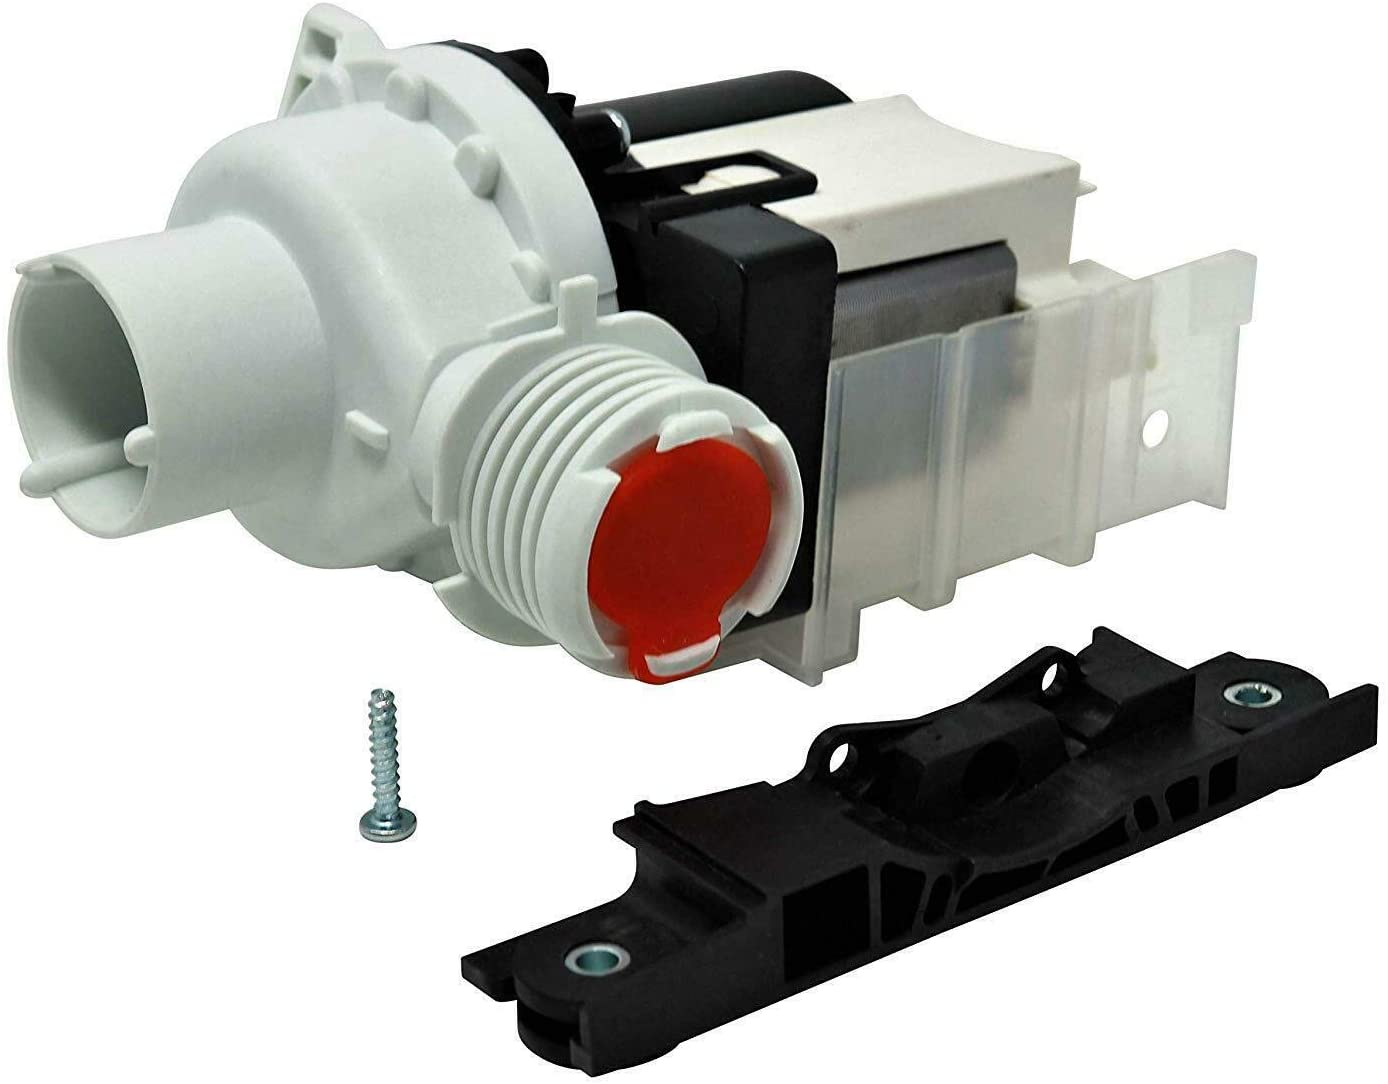 (H&H) New Machine Water Drain Pump for Exactly Compatibility Kenmore Kenmore Washer Washing AP5684706, 137108100, 137151800KITK, 137151800